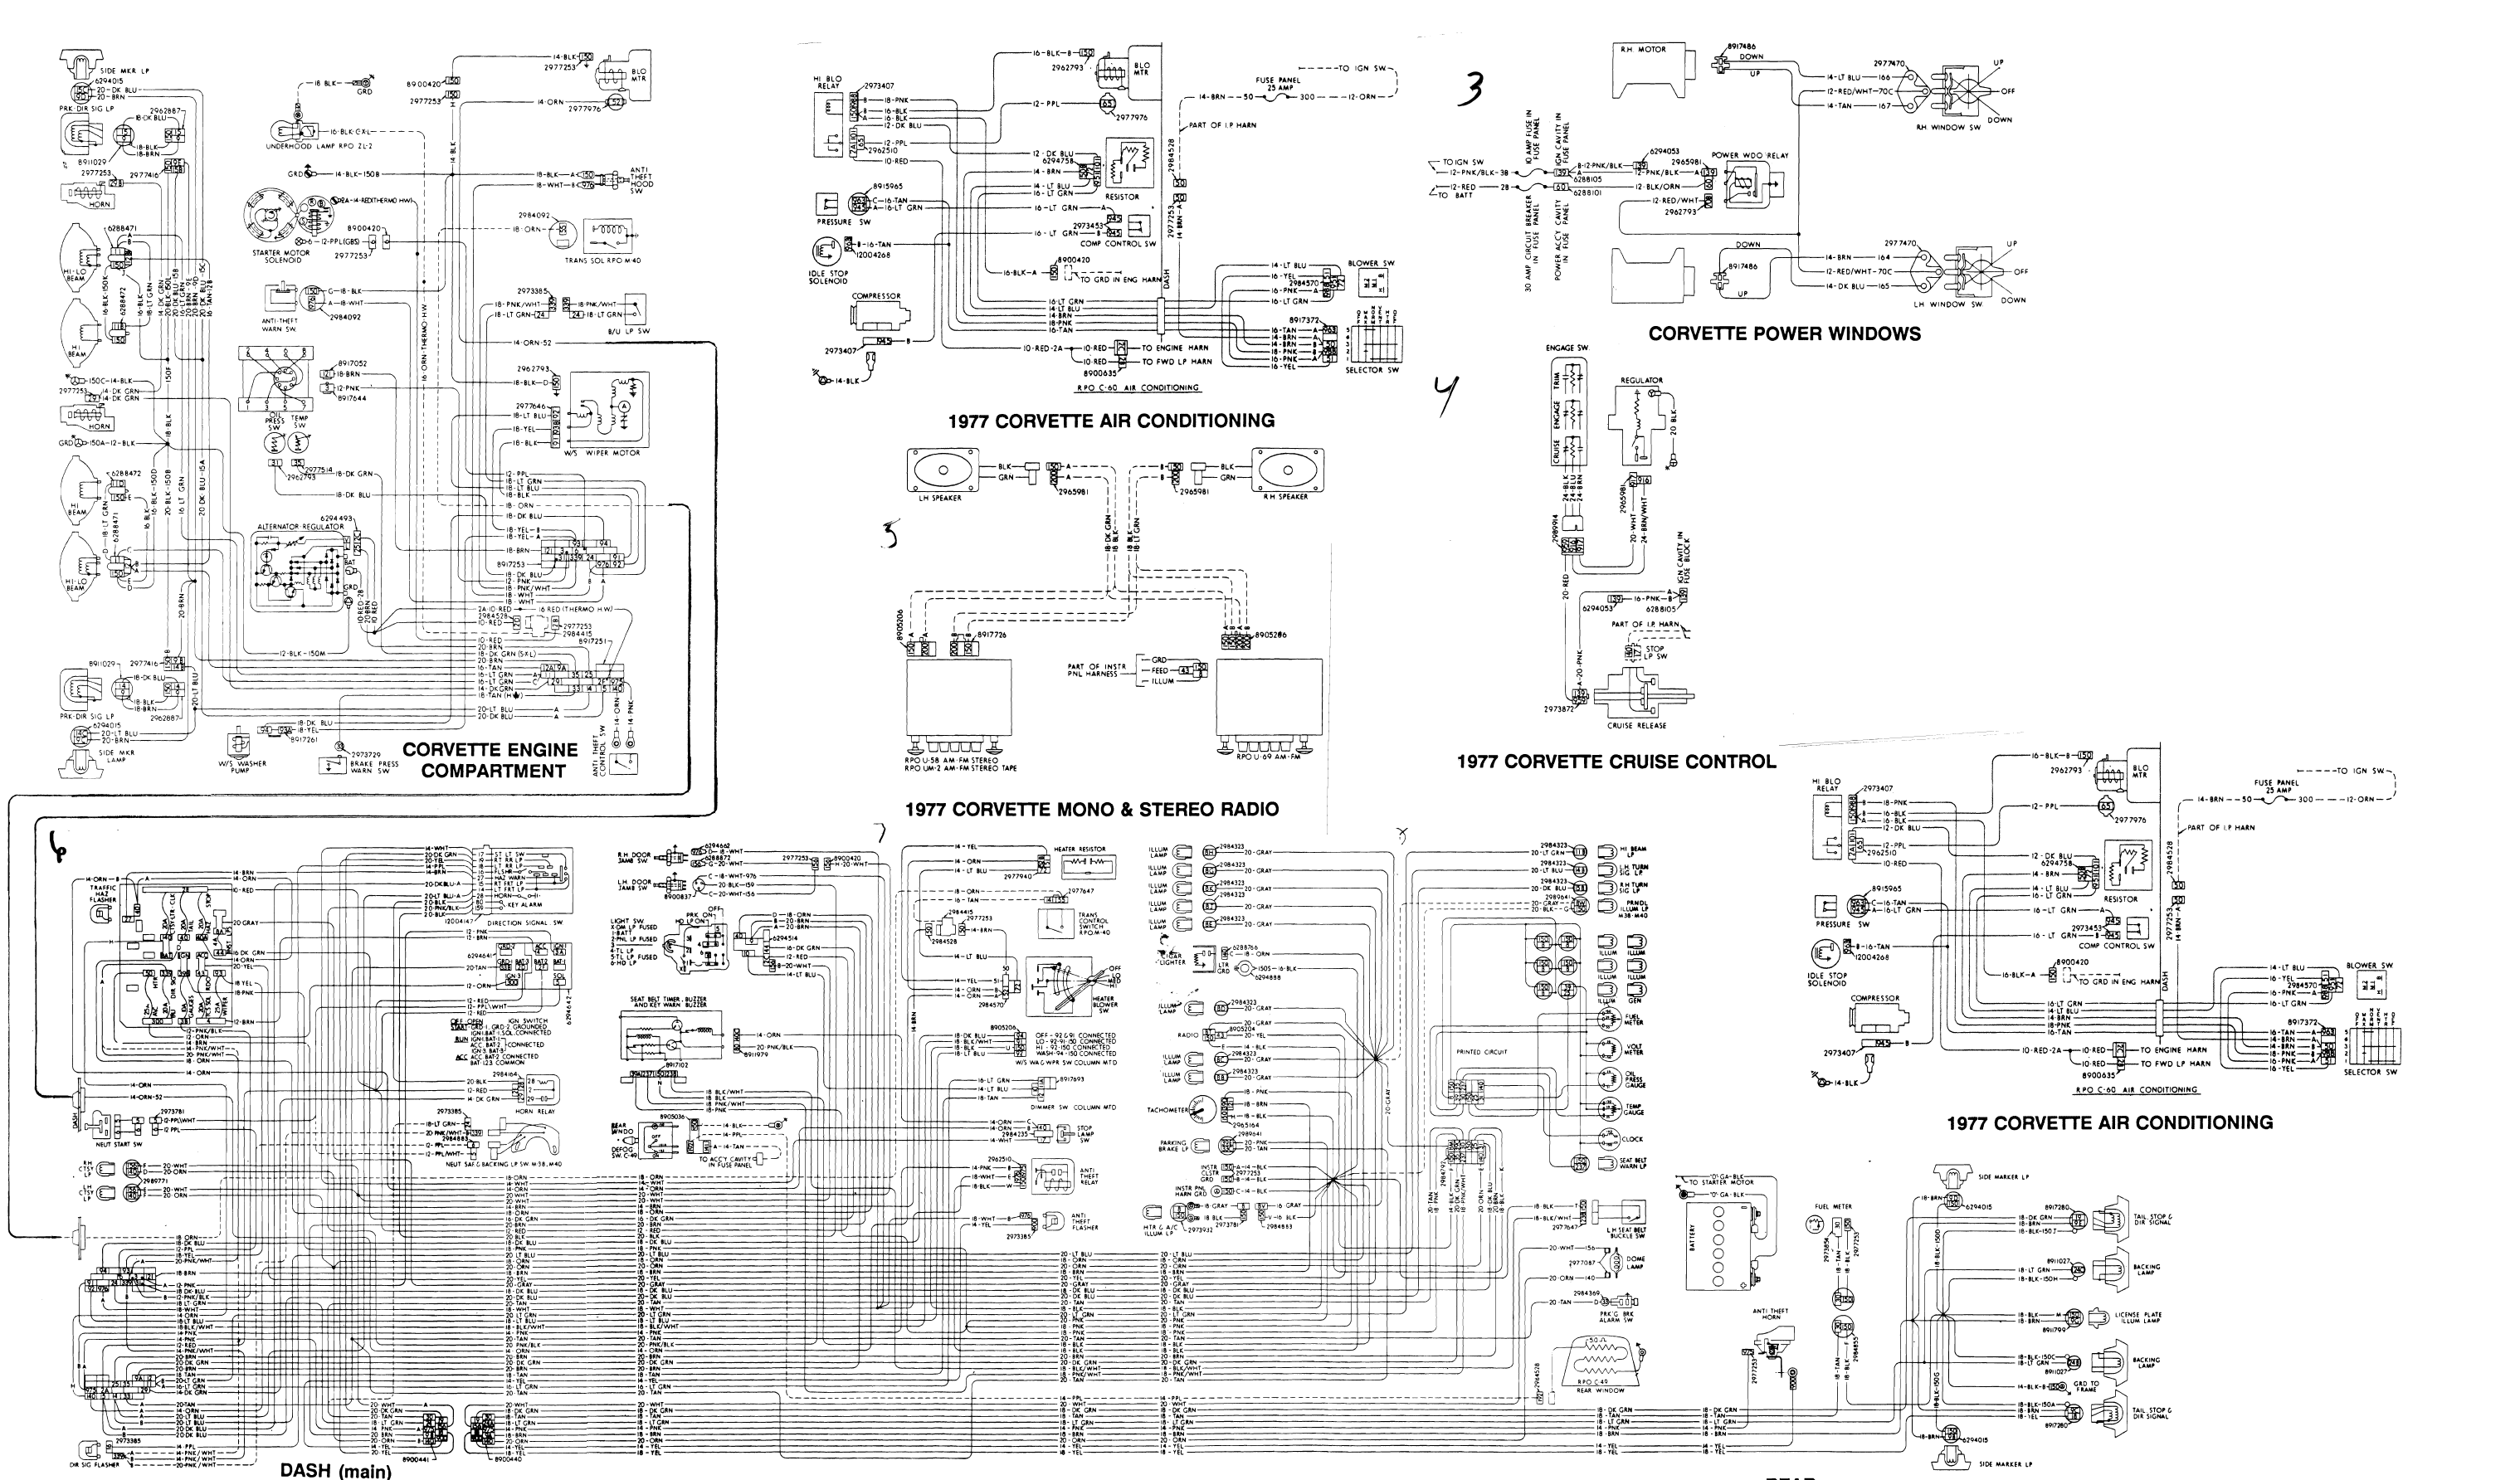 1977 trace harness website 1974 corvette tracer wiring diagram tracer schematic willcox wire diagram for western snow plow at gsmportal.co